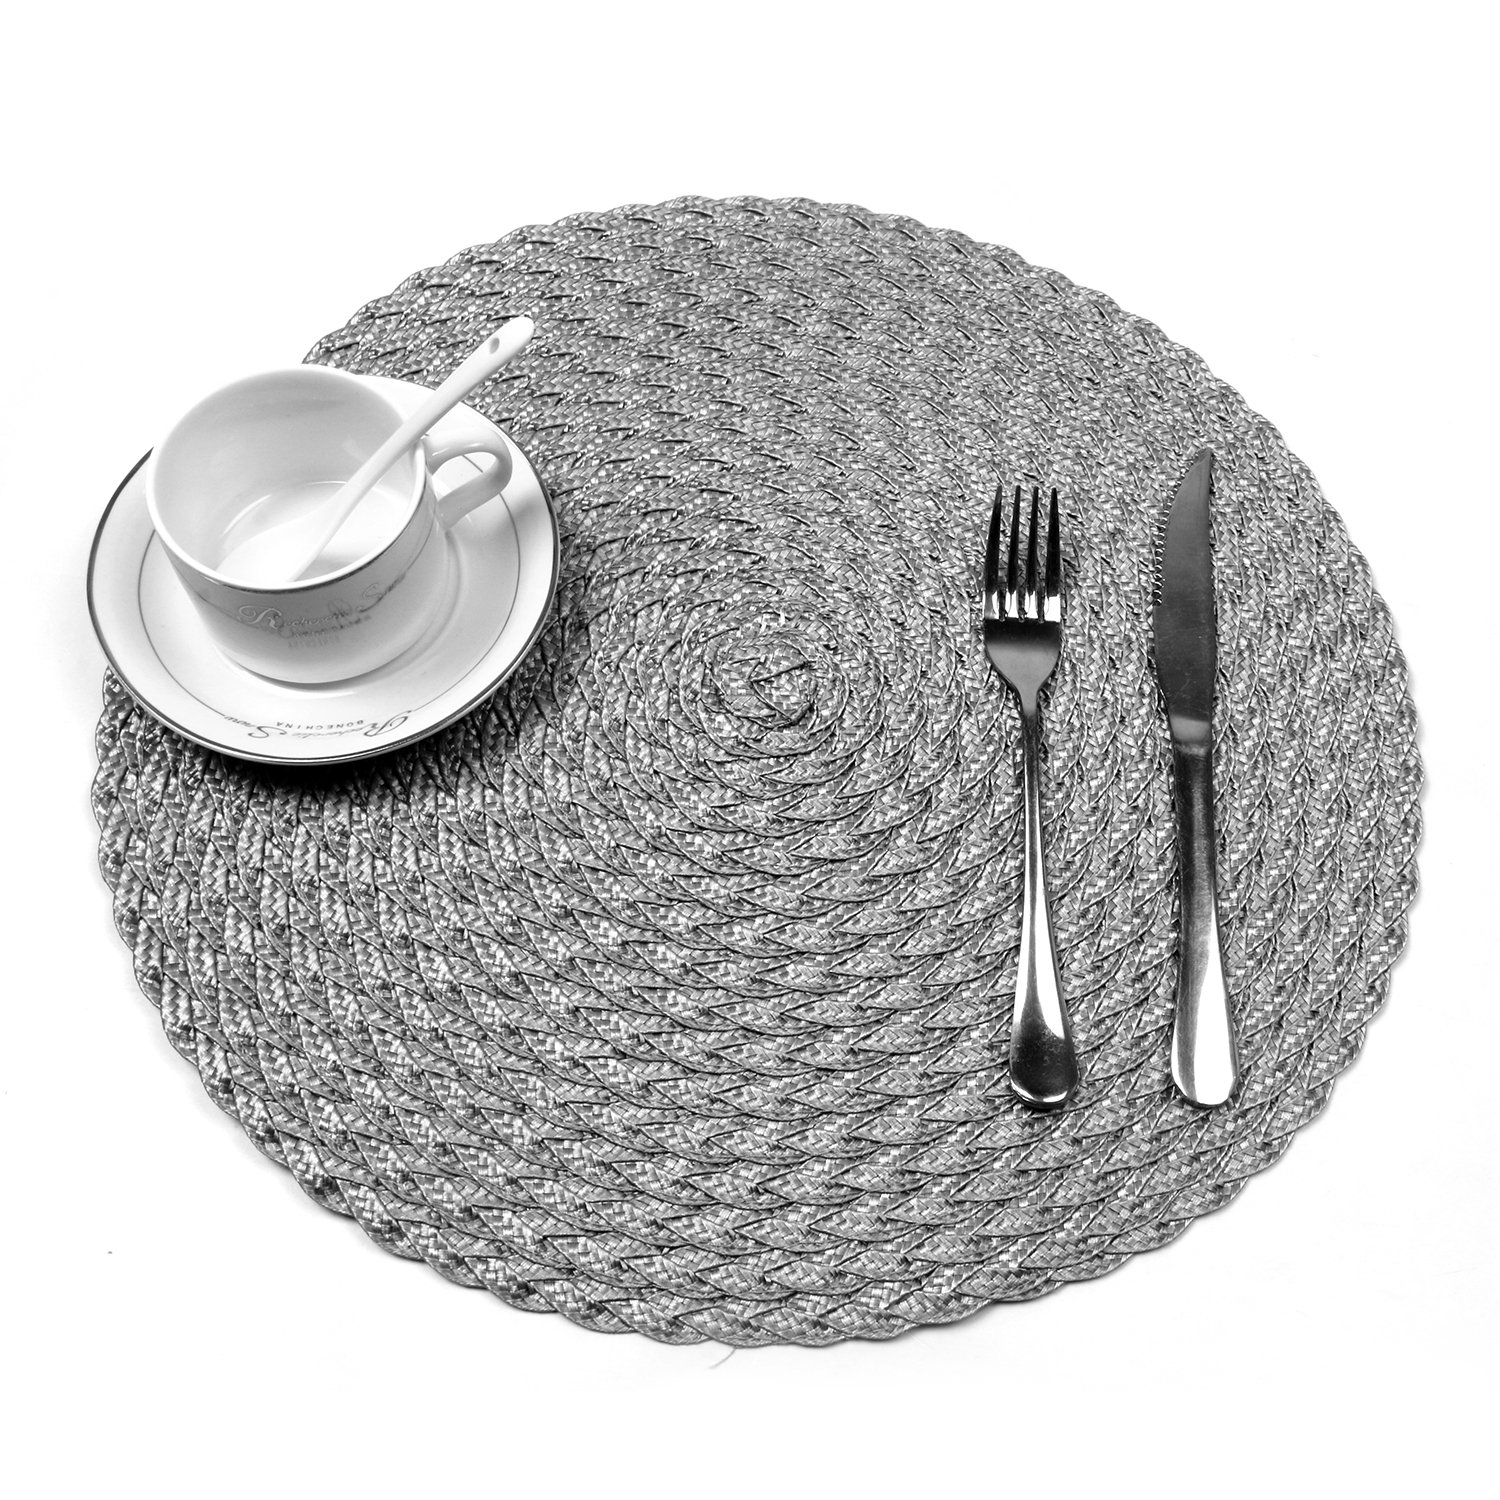 HEBE Round Placemats For Dining Table Set of 6 Woven Braided Placemats Heat Resistant Washable Table Mats Place Mat 15 inch (6, Silver Grey)